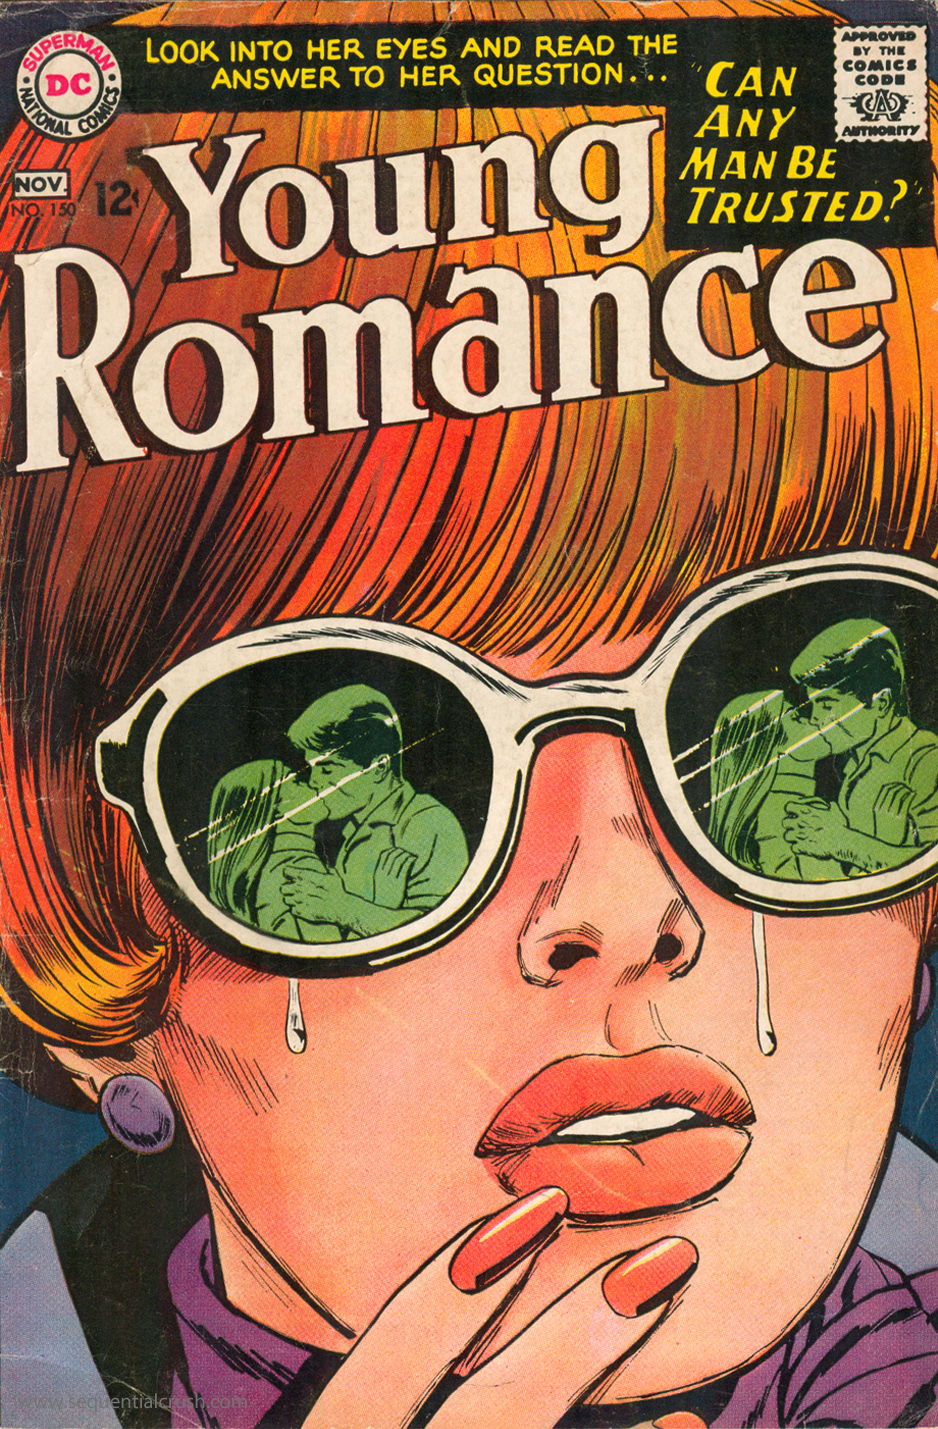 Image result for young romance 150 comic book""